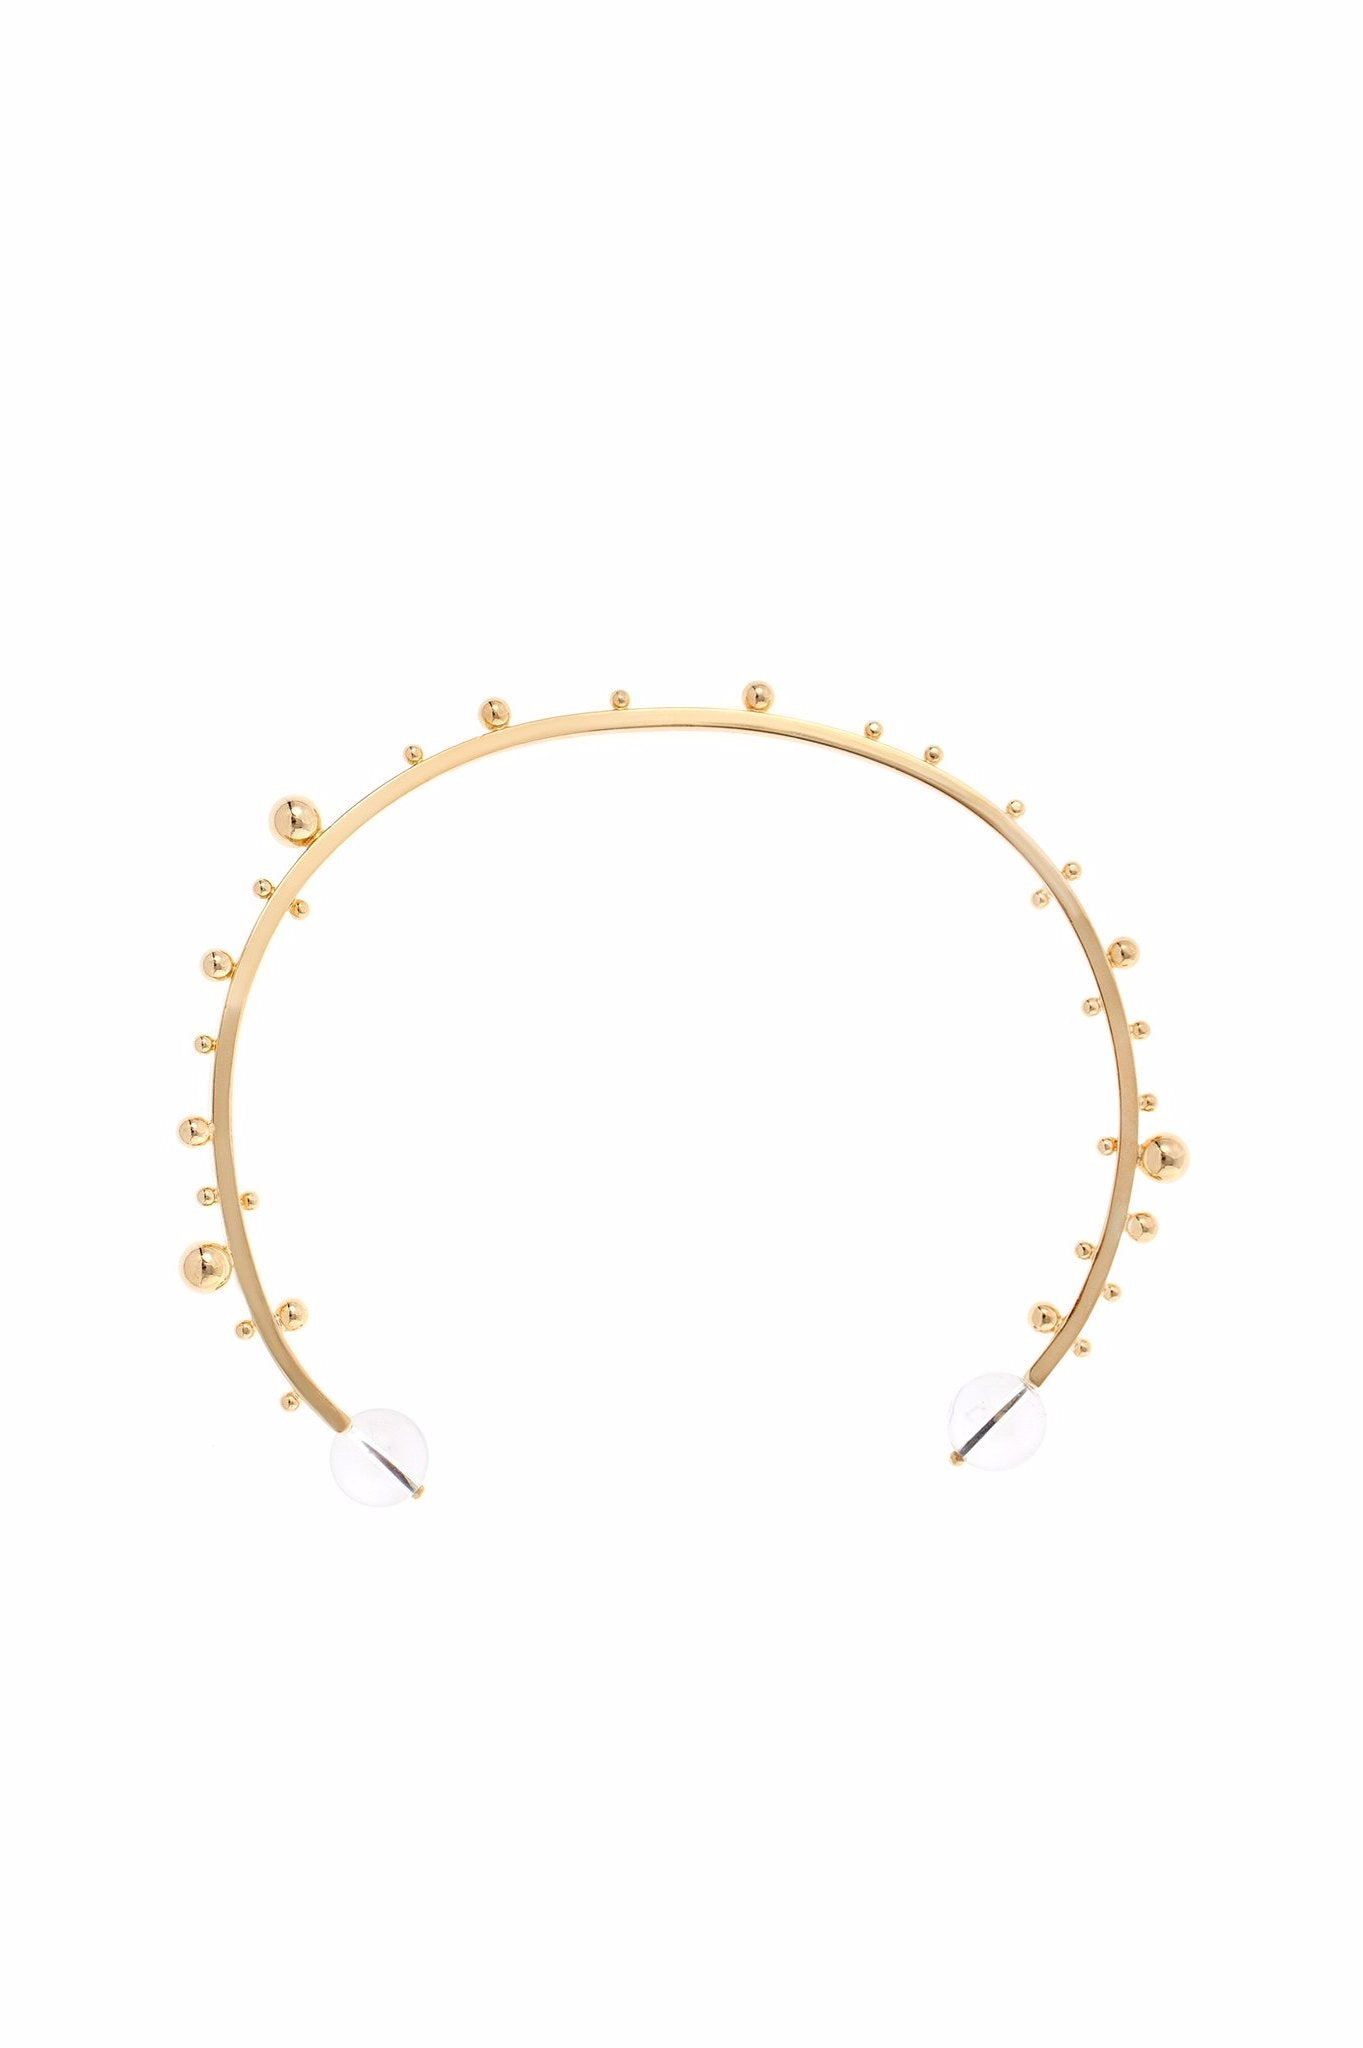 GOLD CRYSTAL AND METAL DEW CHOKER